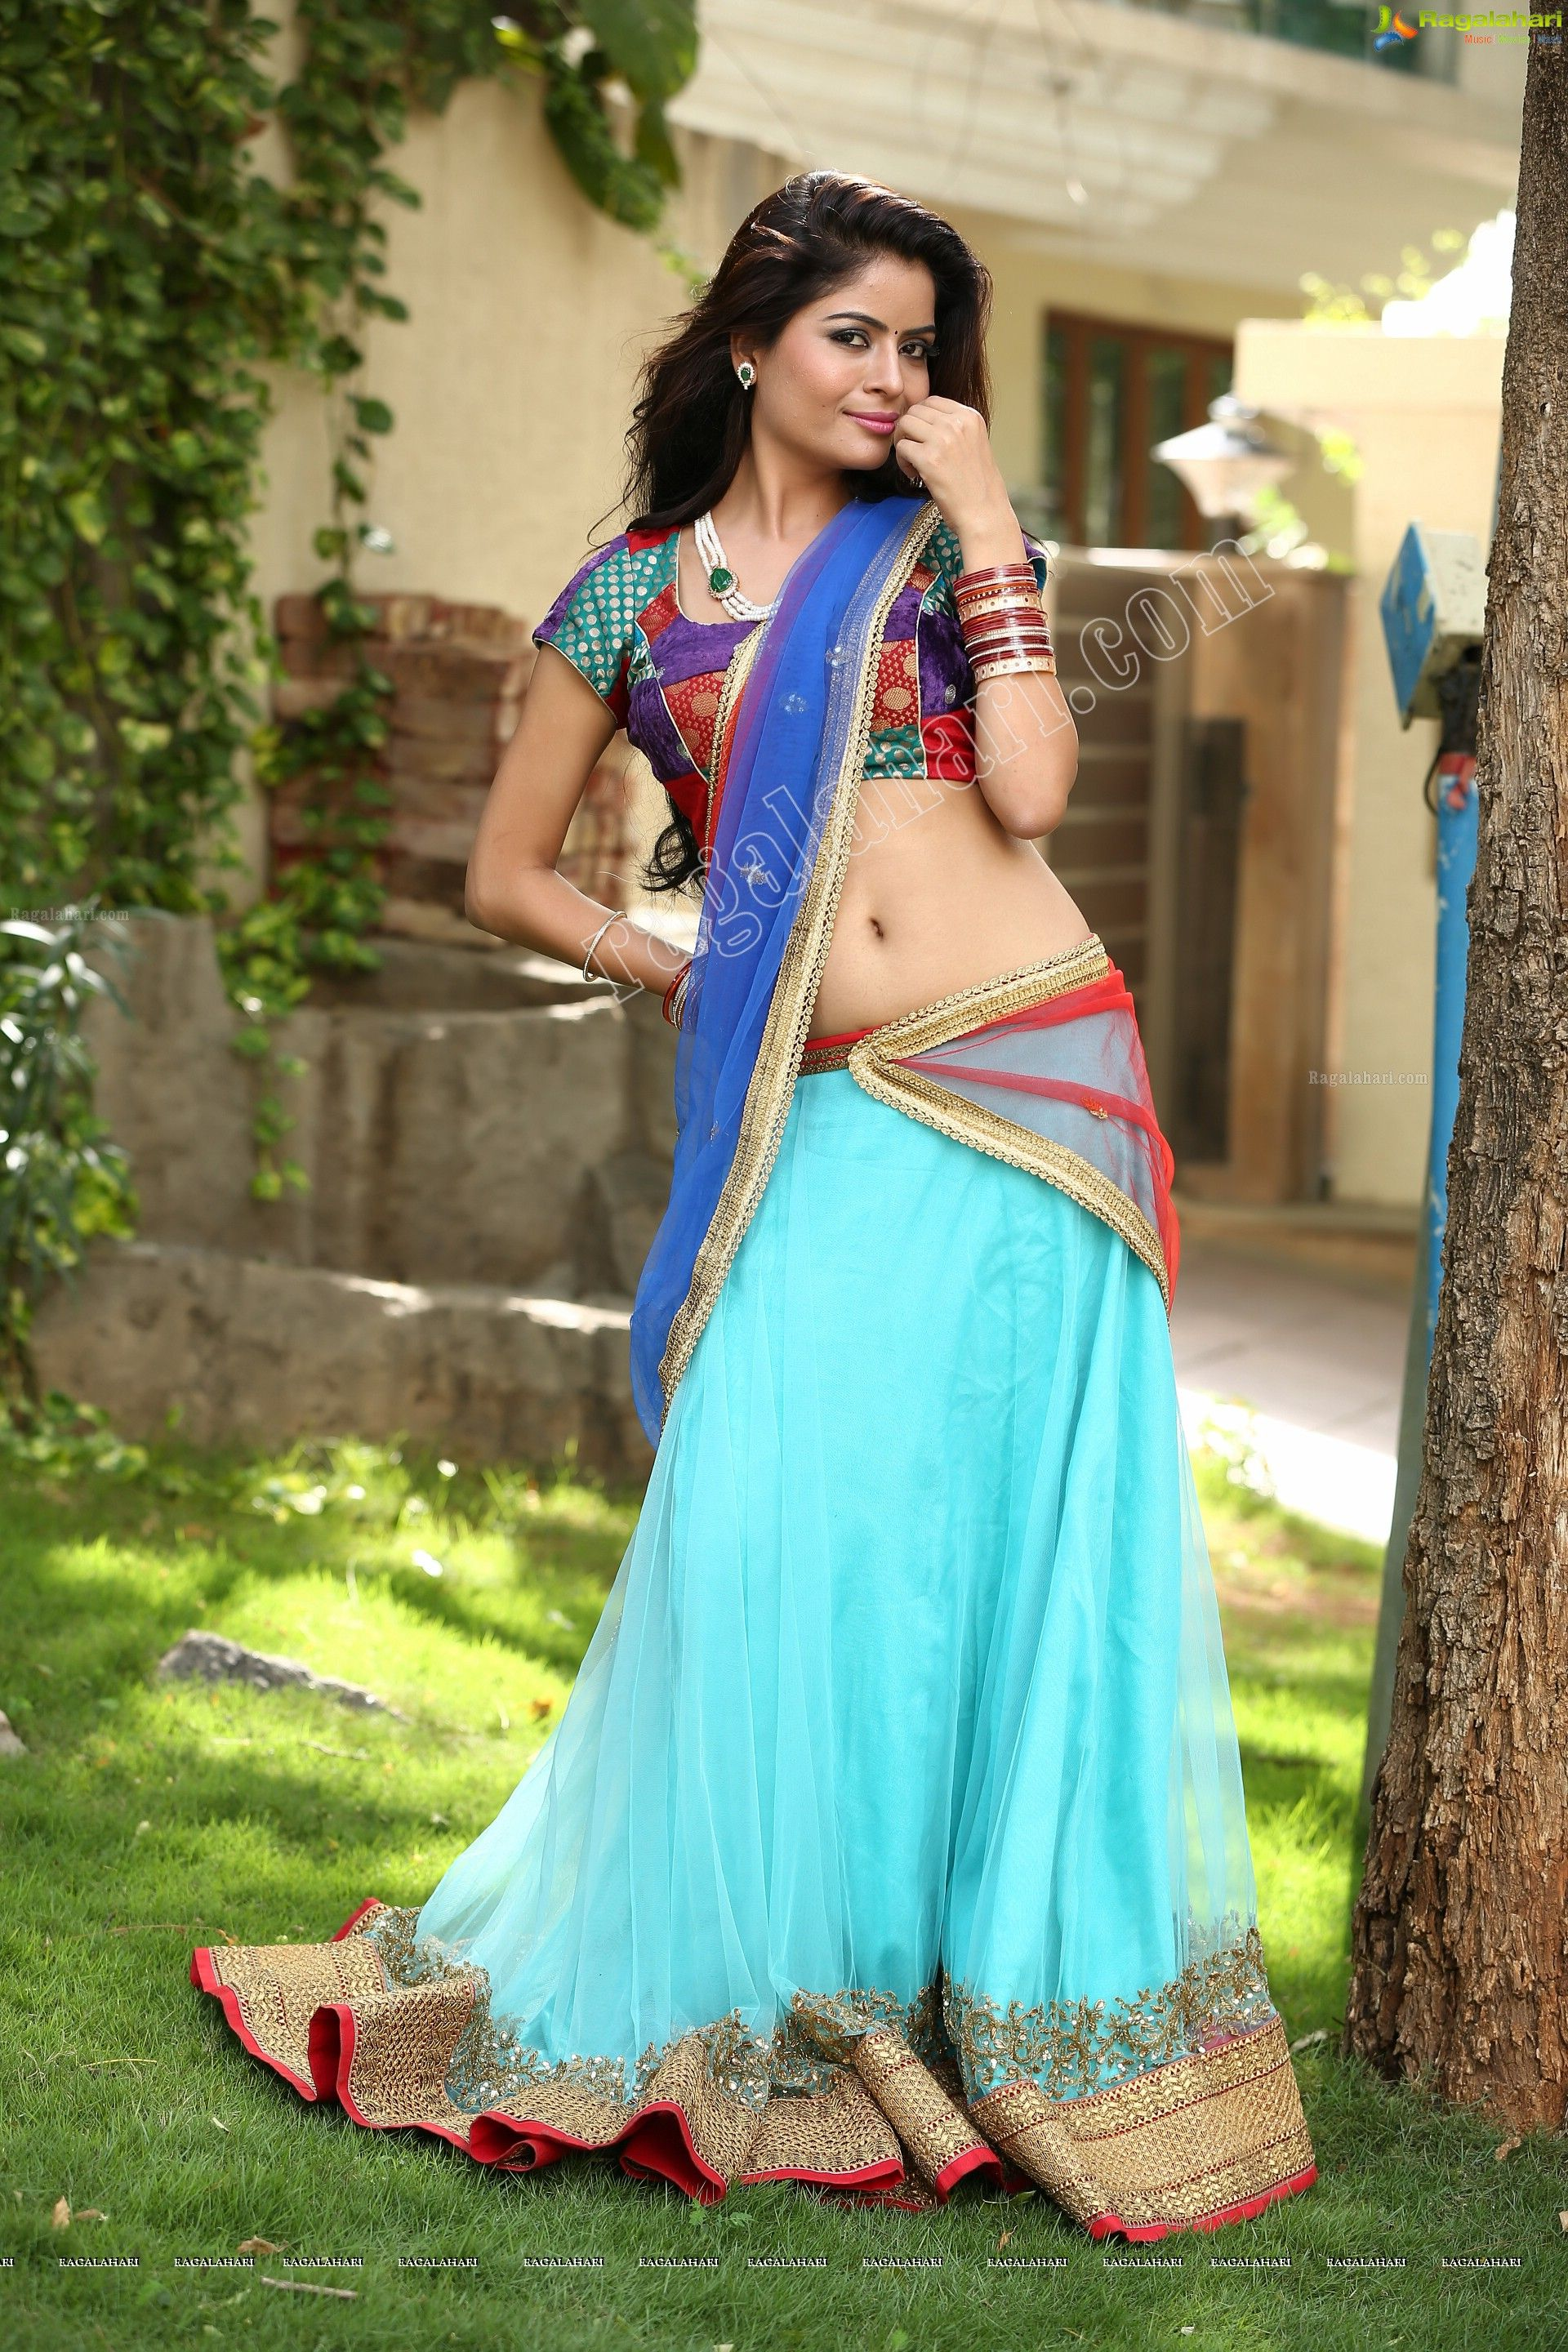 Gehana Vasisth In Half Saree High Definition Saree Half Saree Indian Girls